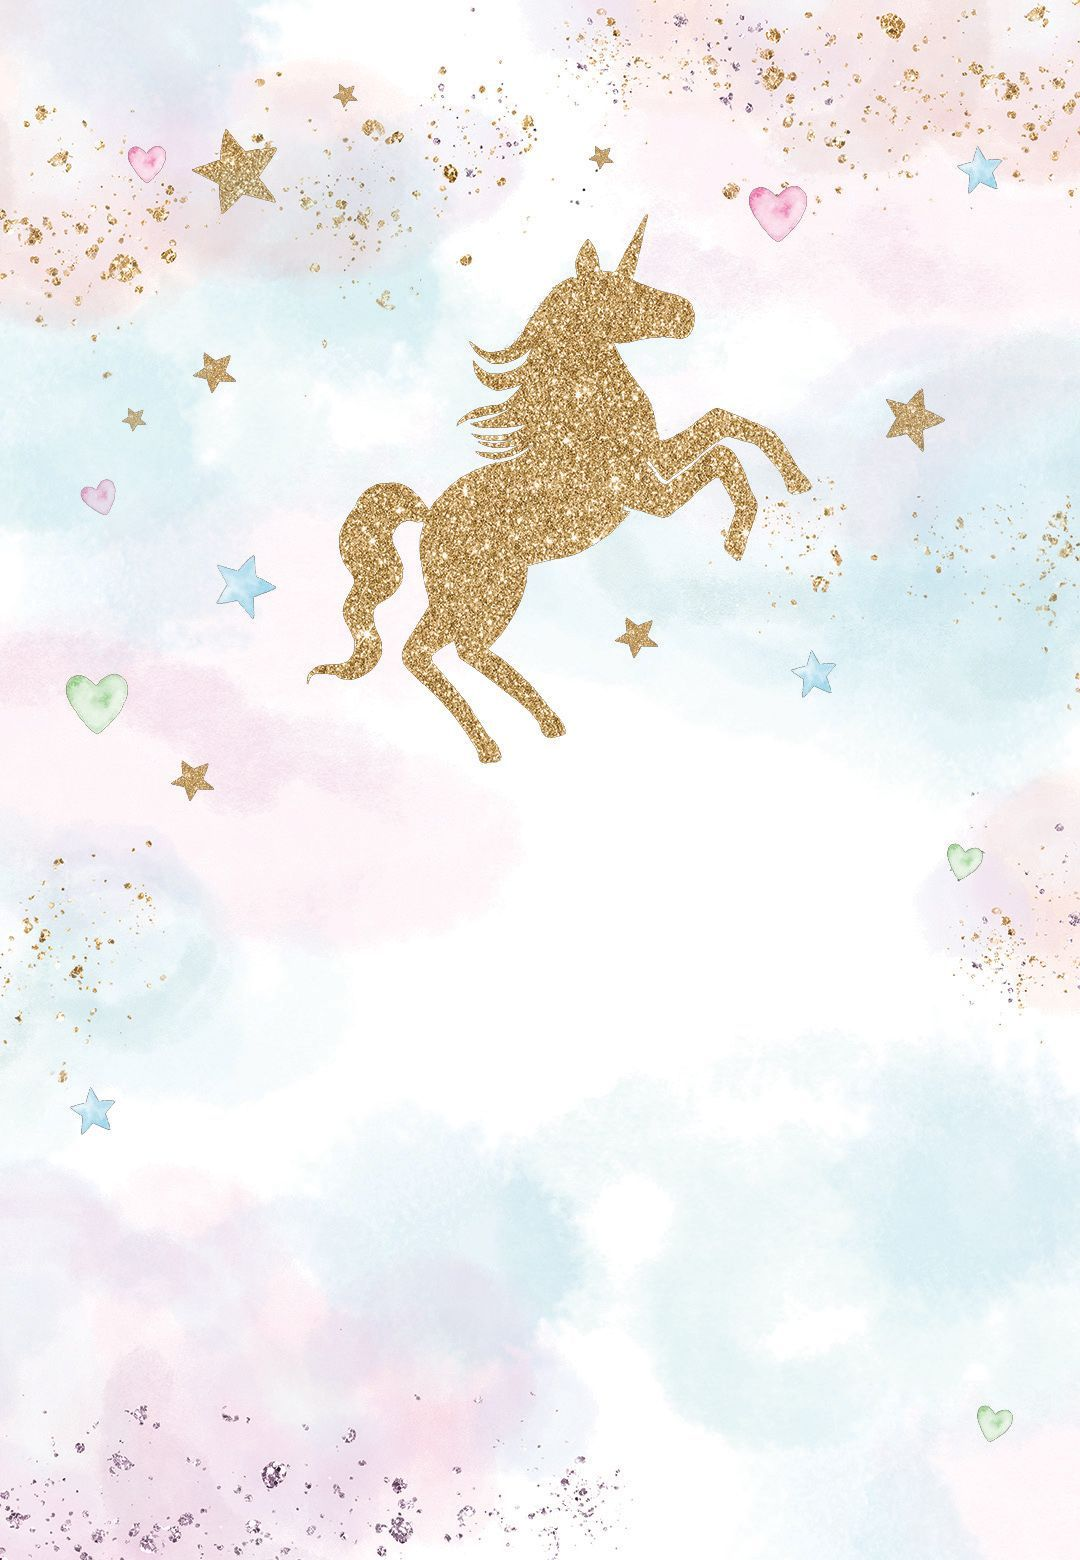 U and Unicorns  Birthday Invitation Template (free - Unicorn birthday invitations, Unicorn invitations, Unicorn party invites, Unicorn birthday, Unicorn themed birthday, Birthday invitations kids - Create 'U and Unicorns'  Birthday invitation  Add text and photos  Download, print or send online for free!